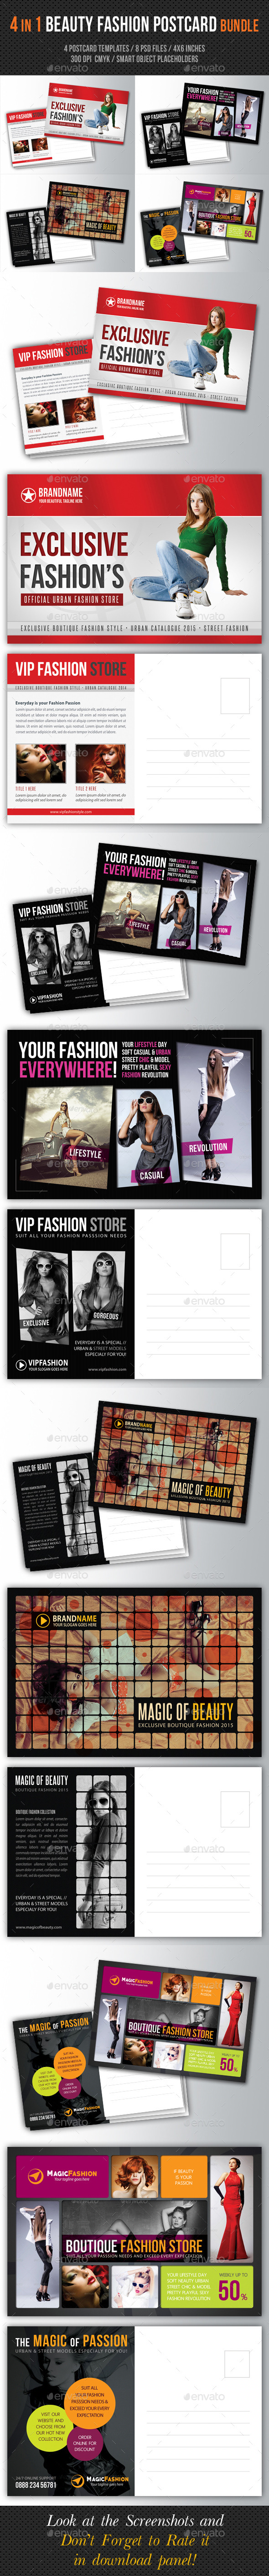 4 in 1 Fashion and Beauty Postcard Template Bundle